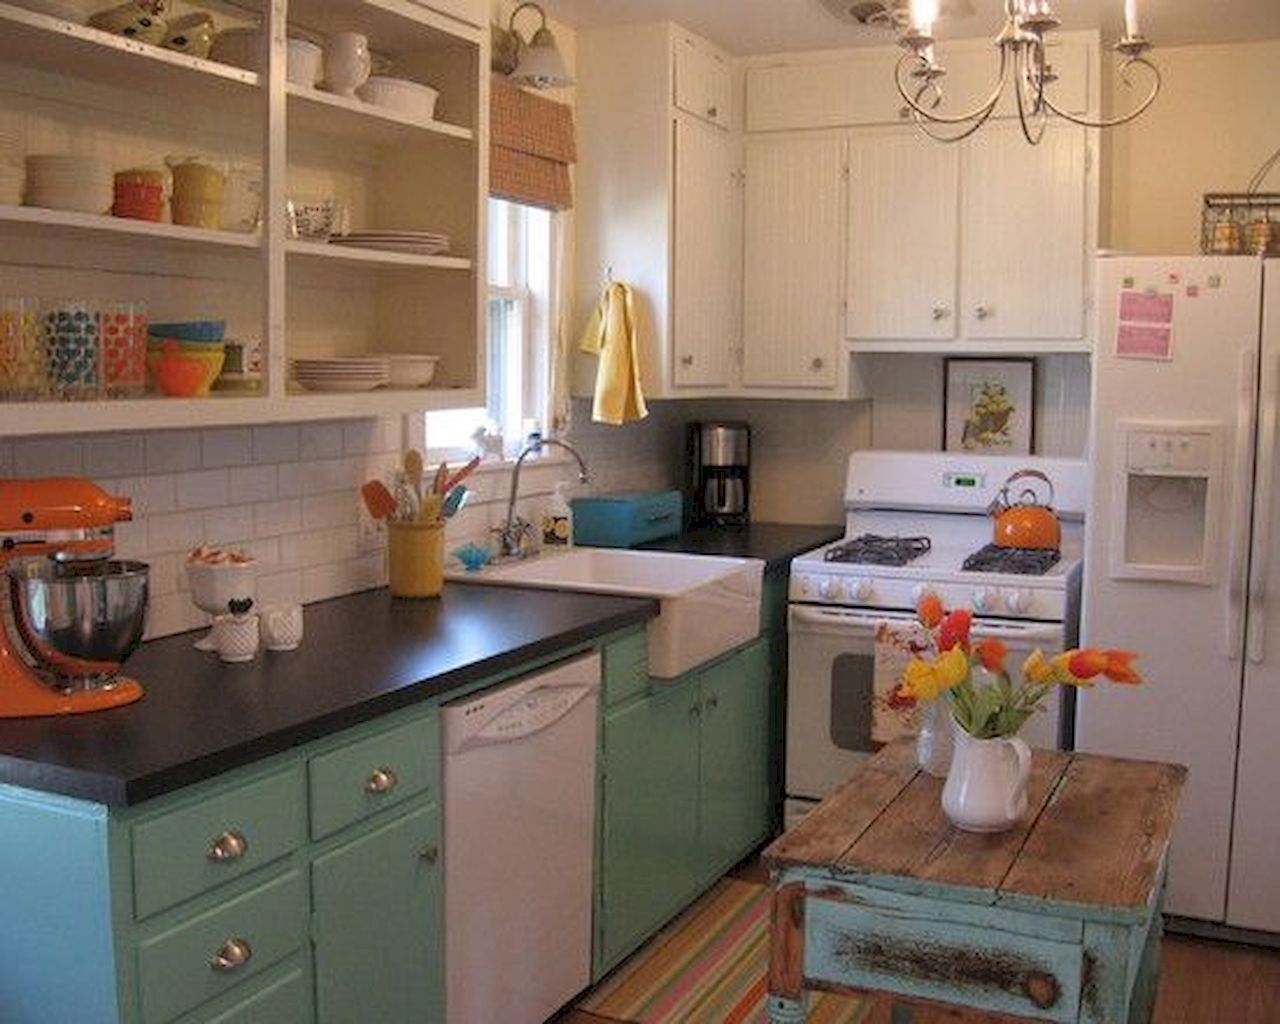 Small Kitchen Plan And Design For Small Room Home To Z Eclectic Kitchen Kitchen Inspiration Design Kitchen Design Color